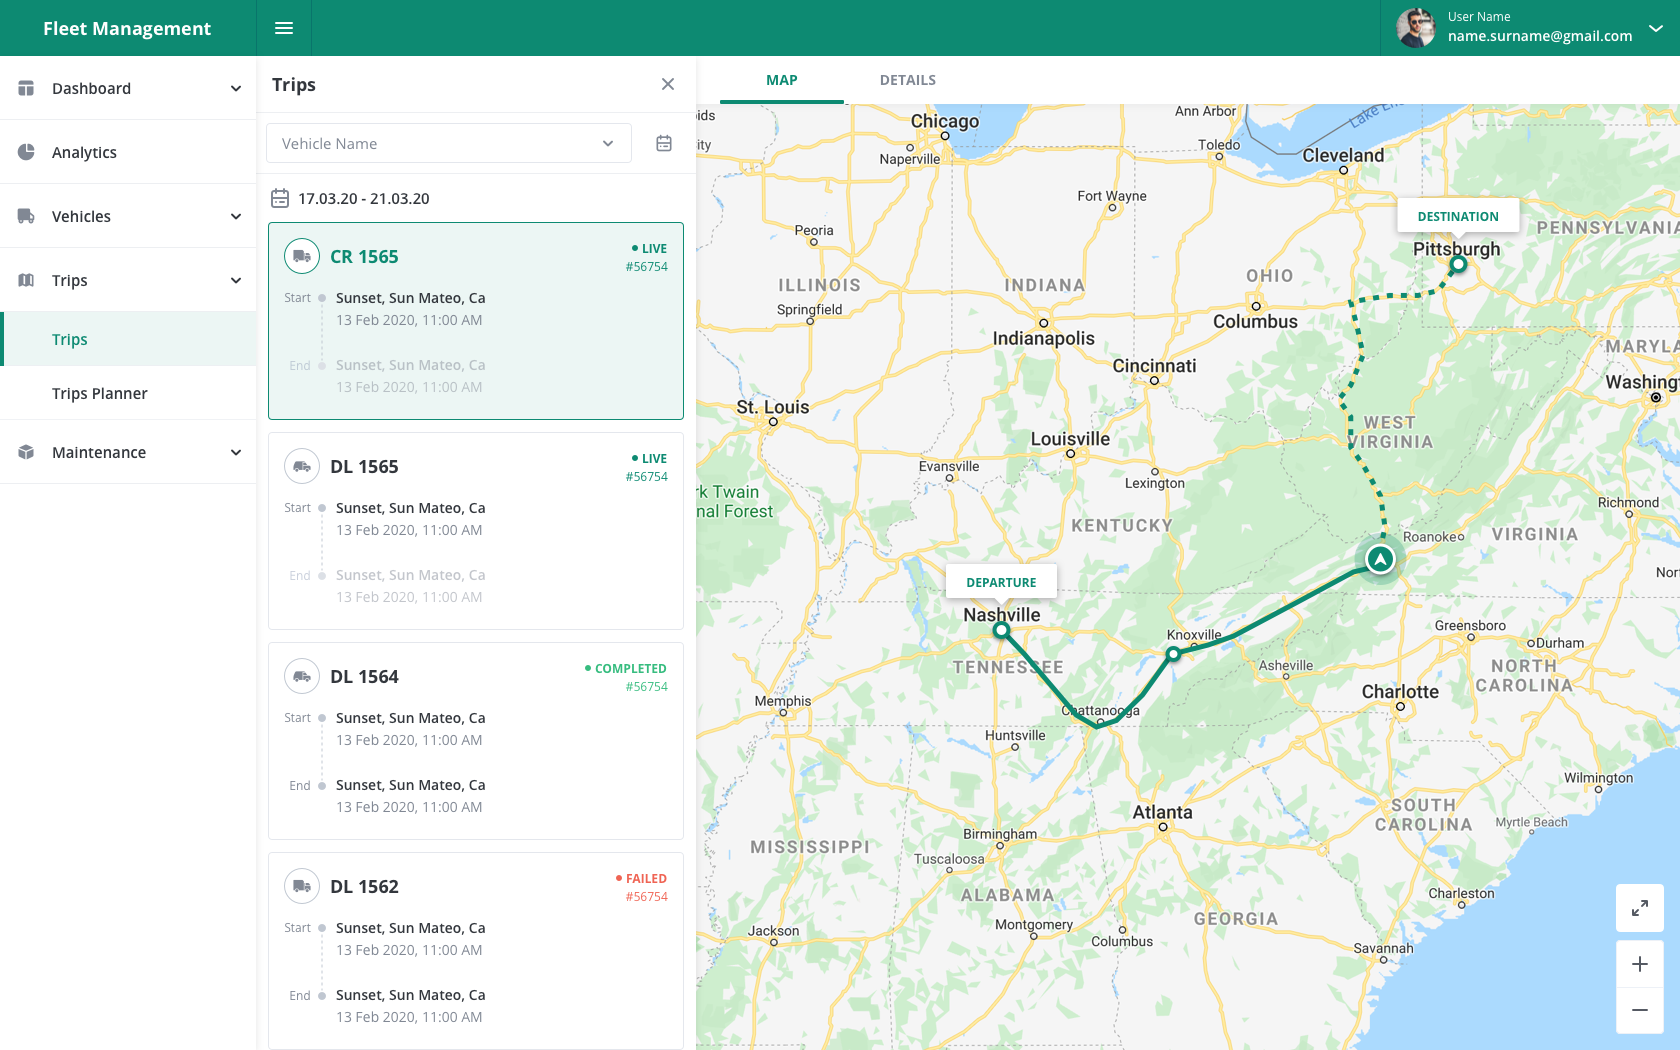 Fleet Management Dashboard Trips Details